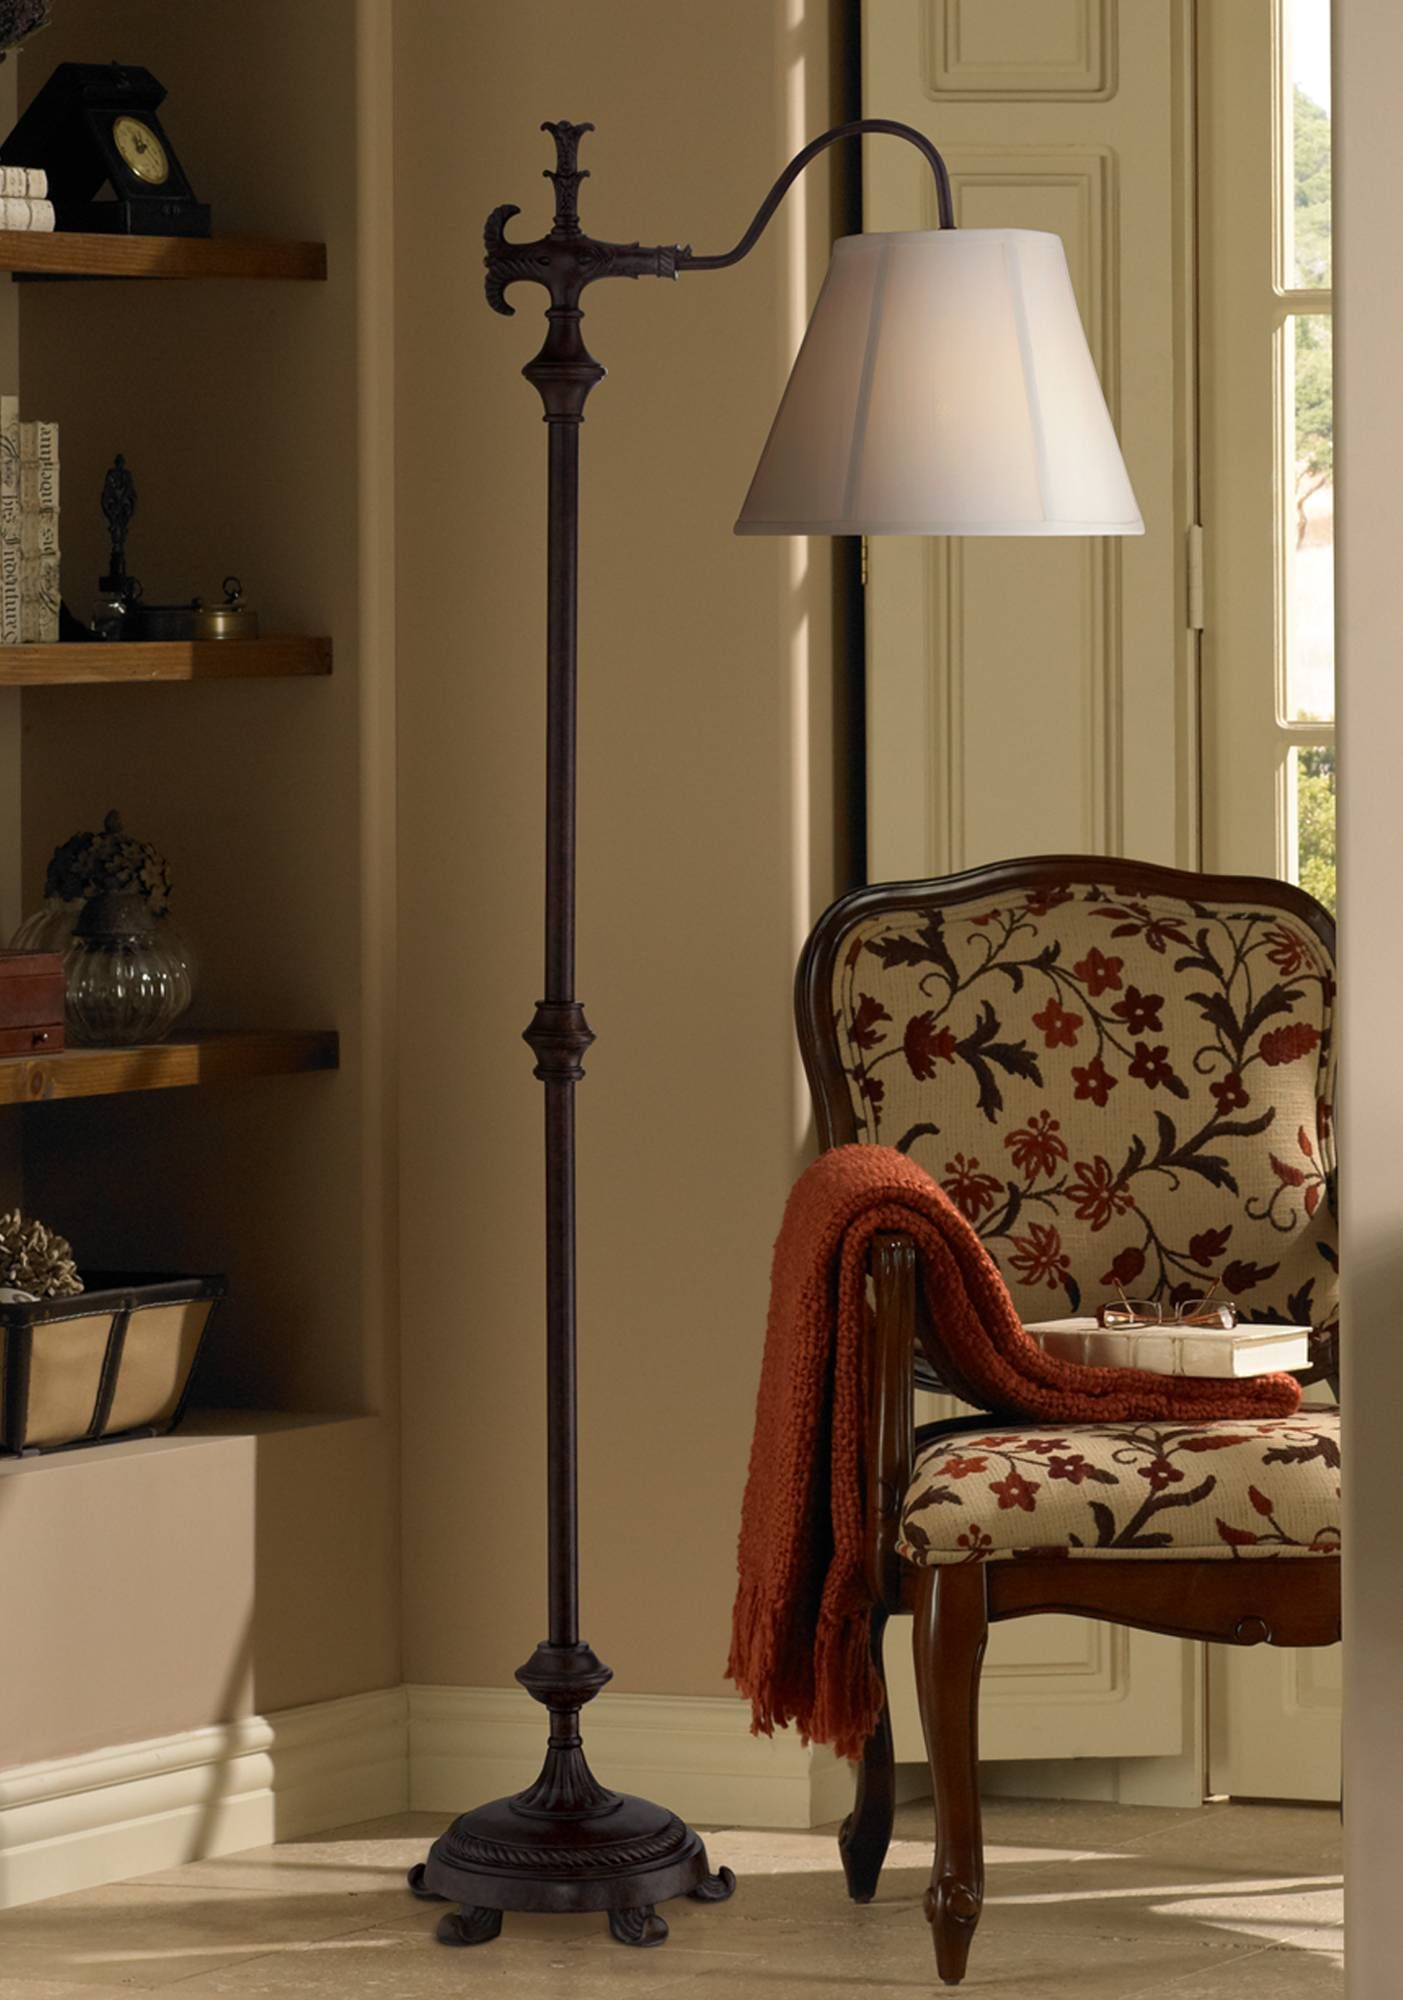 hanging rustic decor pedestal house western traditional iron lamp hamptons photos lighting elk style of clicvan parrot design l black country size twiggy full lamps affordable table antler floor